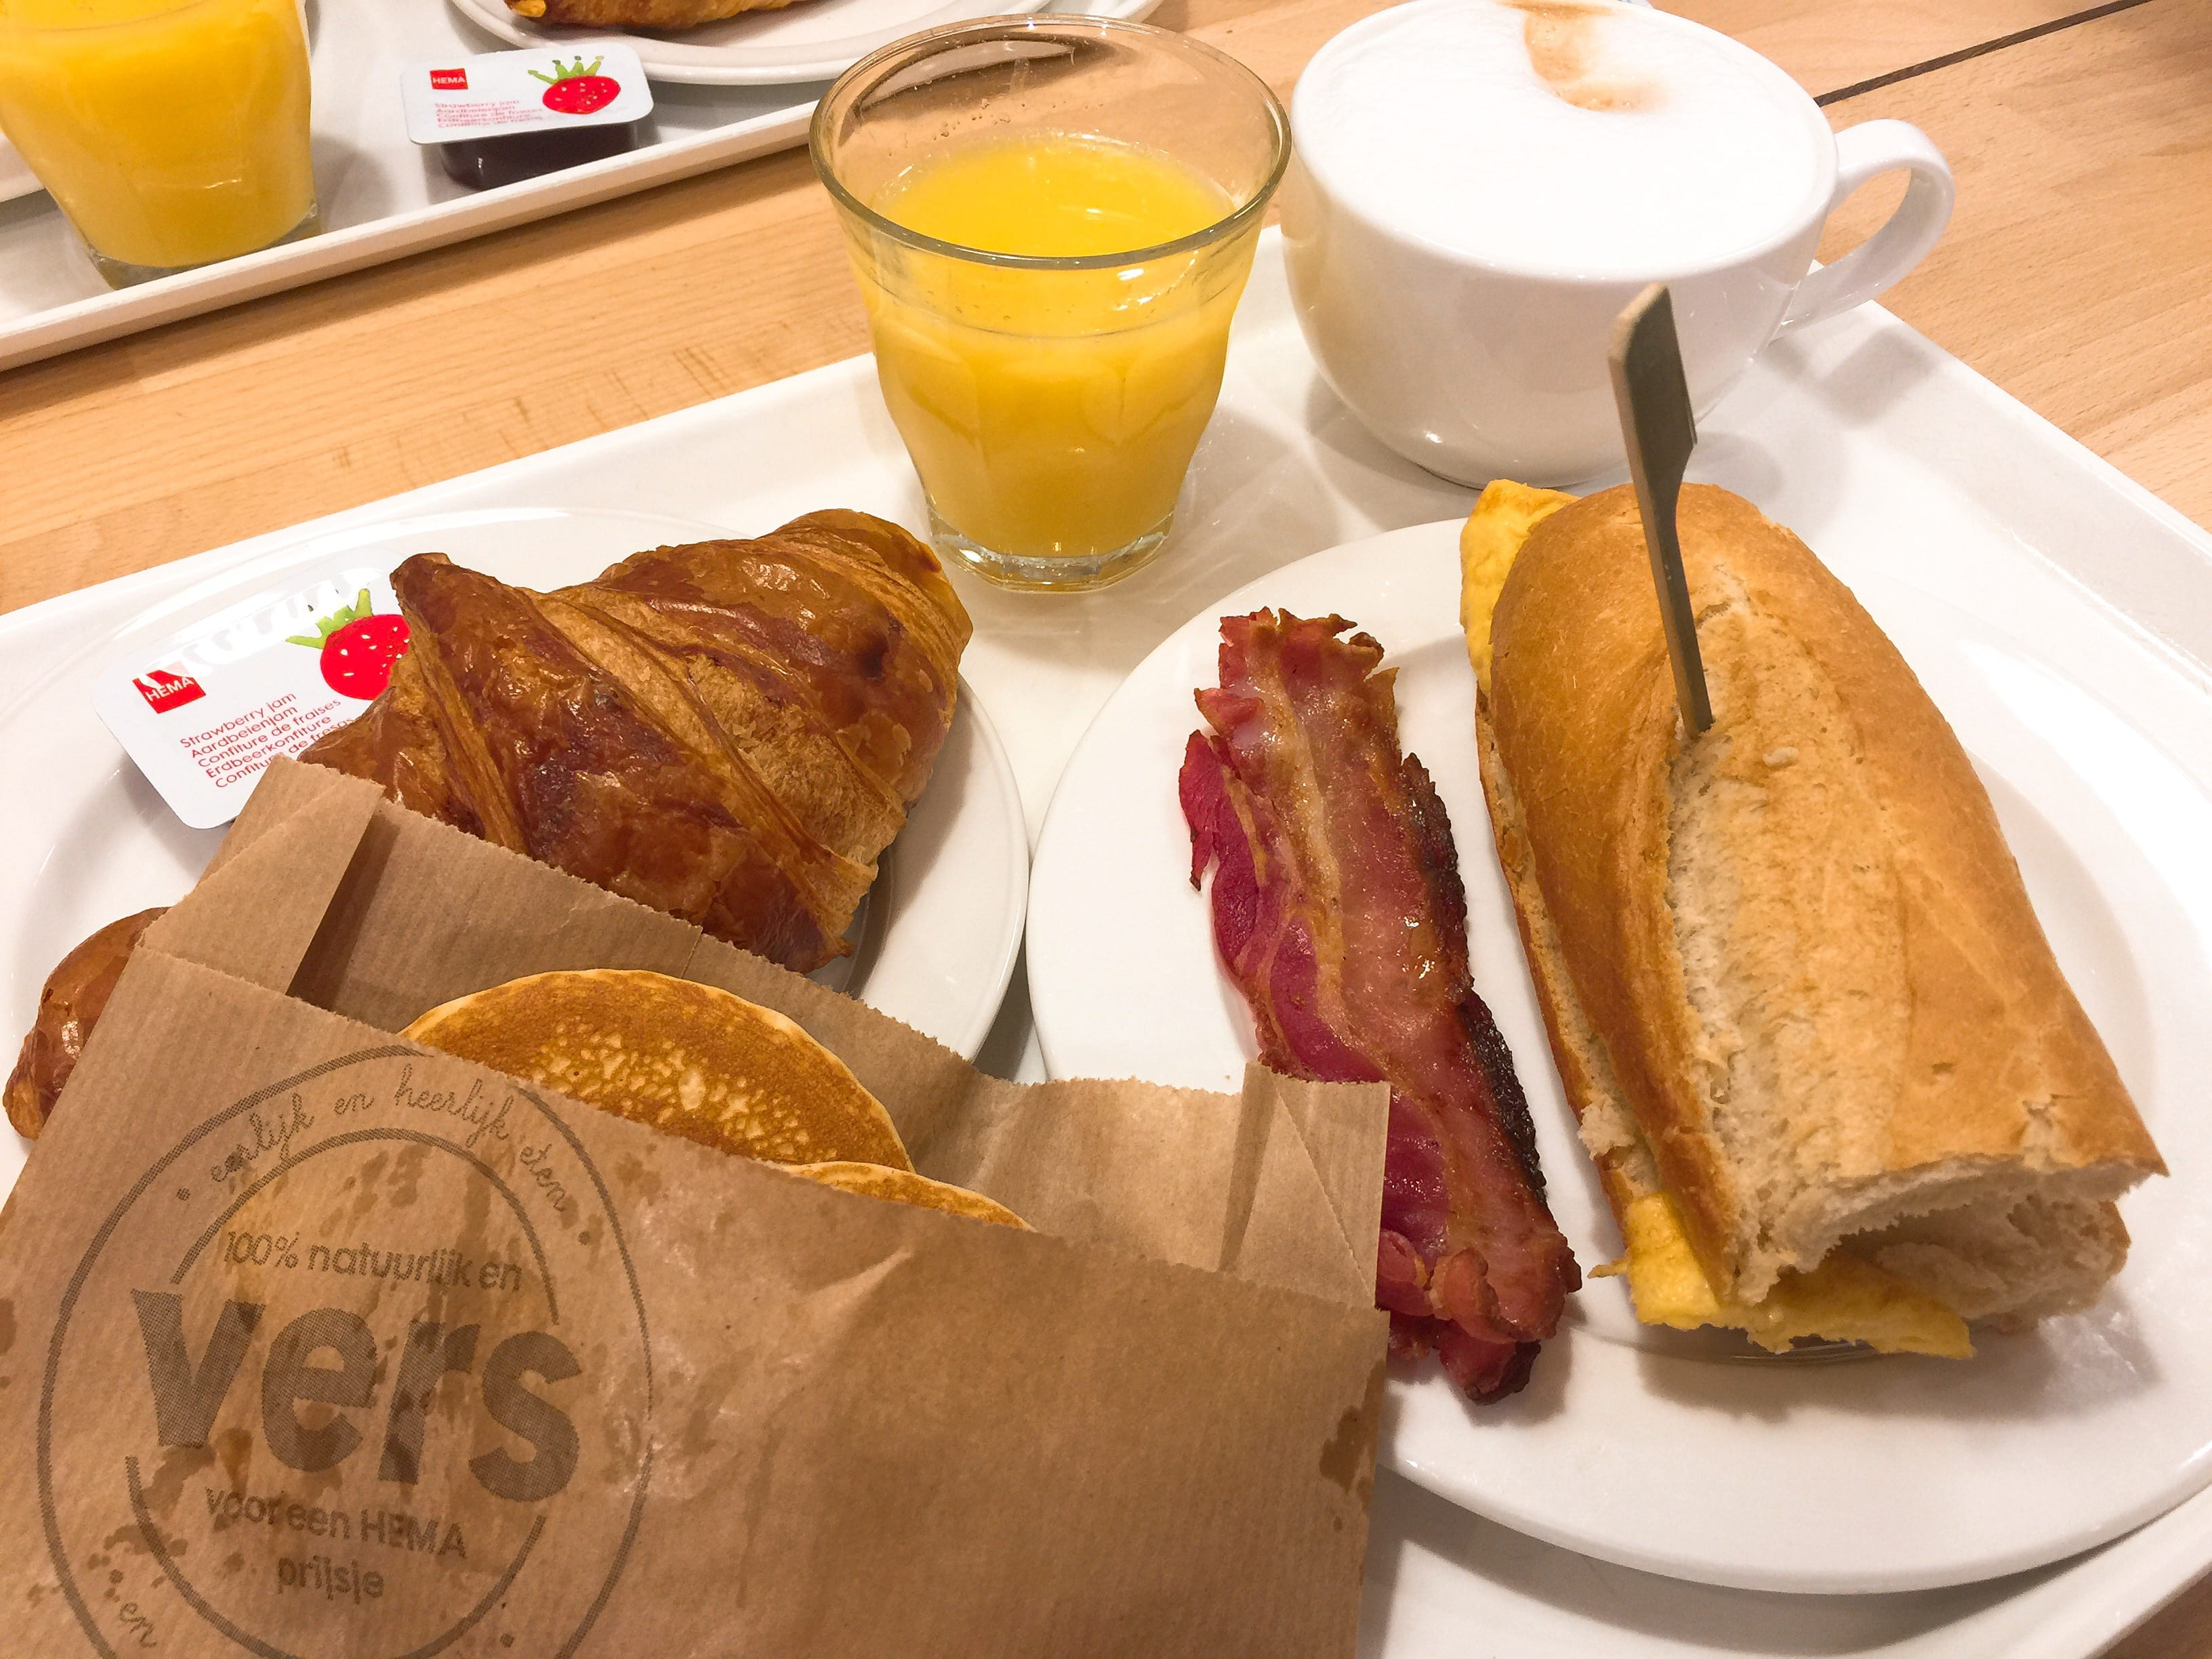 Food: Cheap breakfast in The Hague, Amsterdam and more!